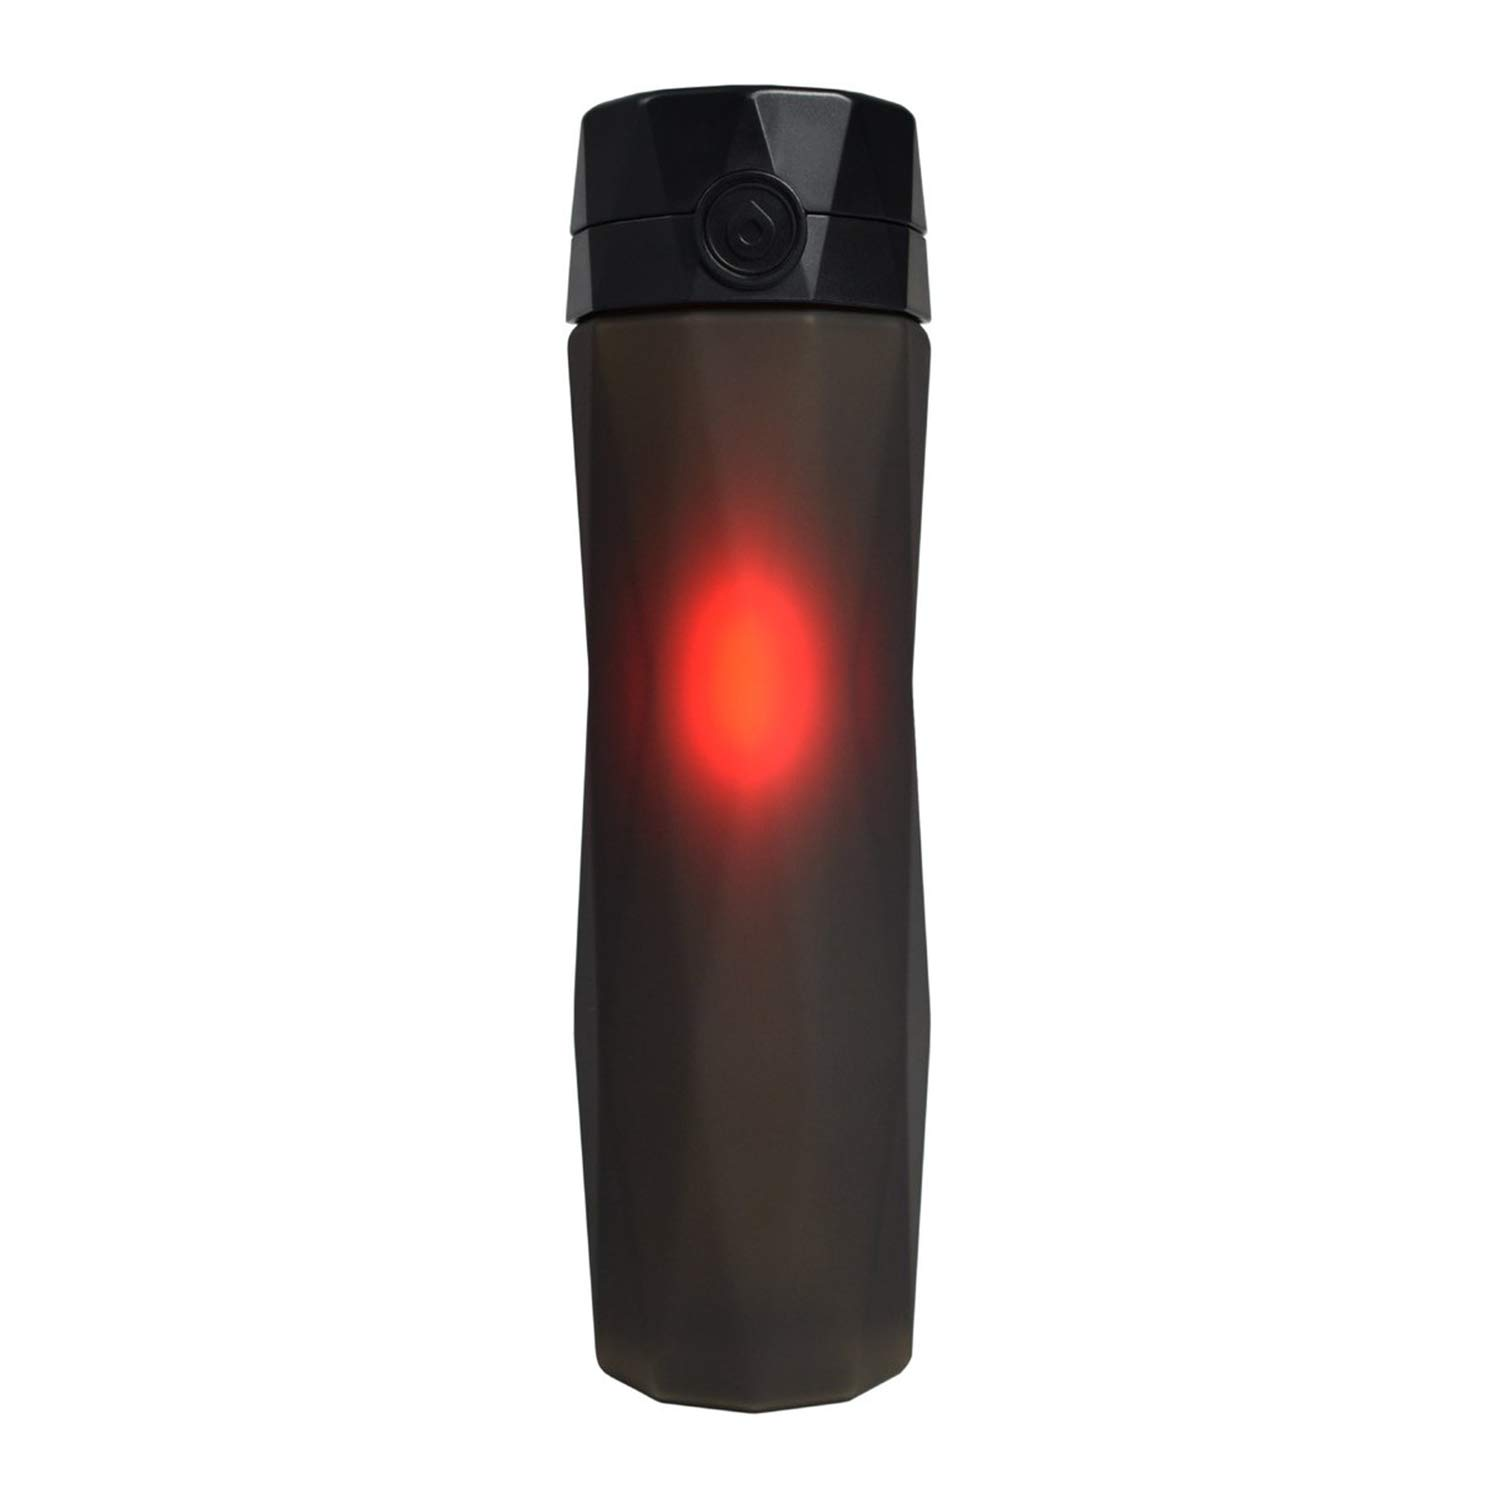 Hidrate Spark 2.0A Smart Water Bottle - New & Improved - Tracks Water Intake & Glows to Remind You to Stay Hydrated (Black)